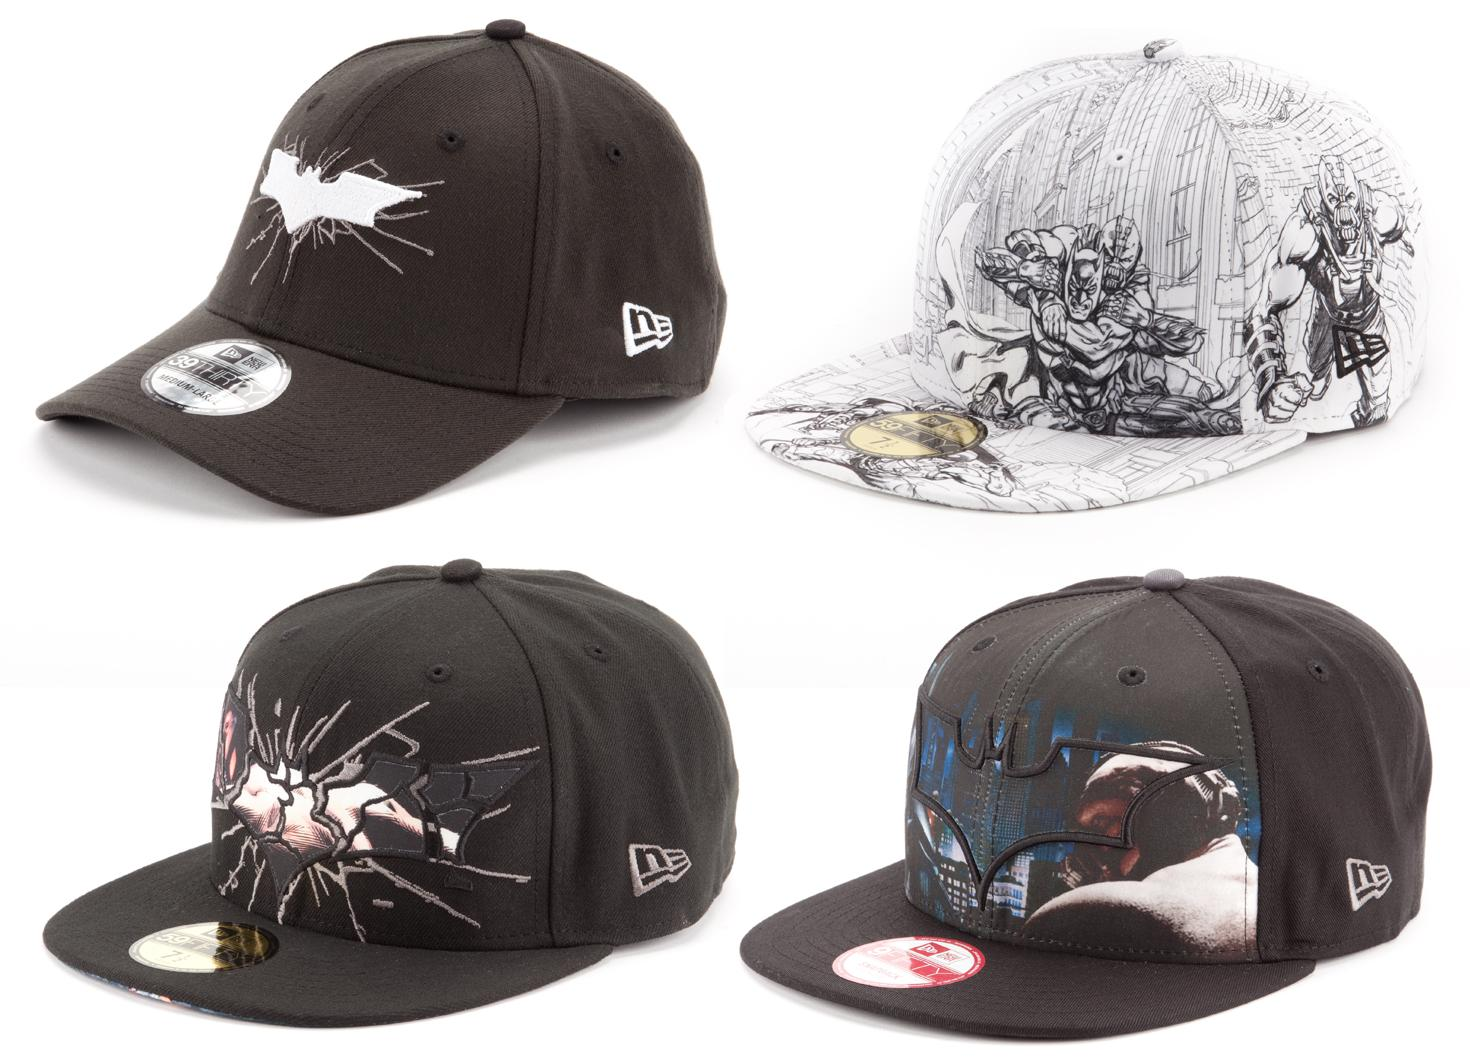 ea68639bafe The Dark Knight Rises New Era Hat Collection - Batman and Bane Snapback and  Fitted Hats